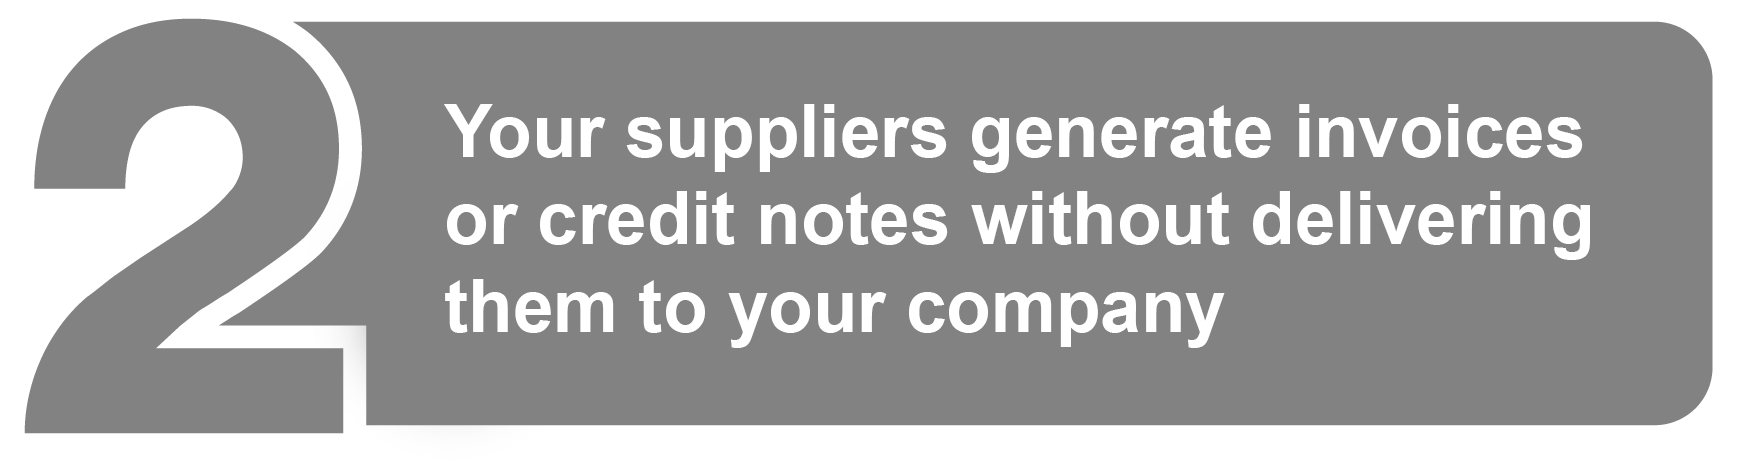 Your suppliers generate invoices or credit notes without delivering them to your company